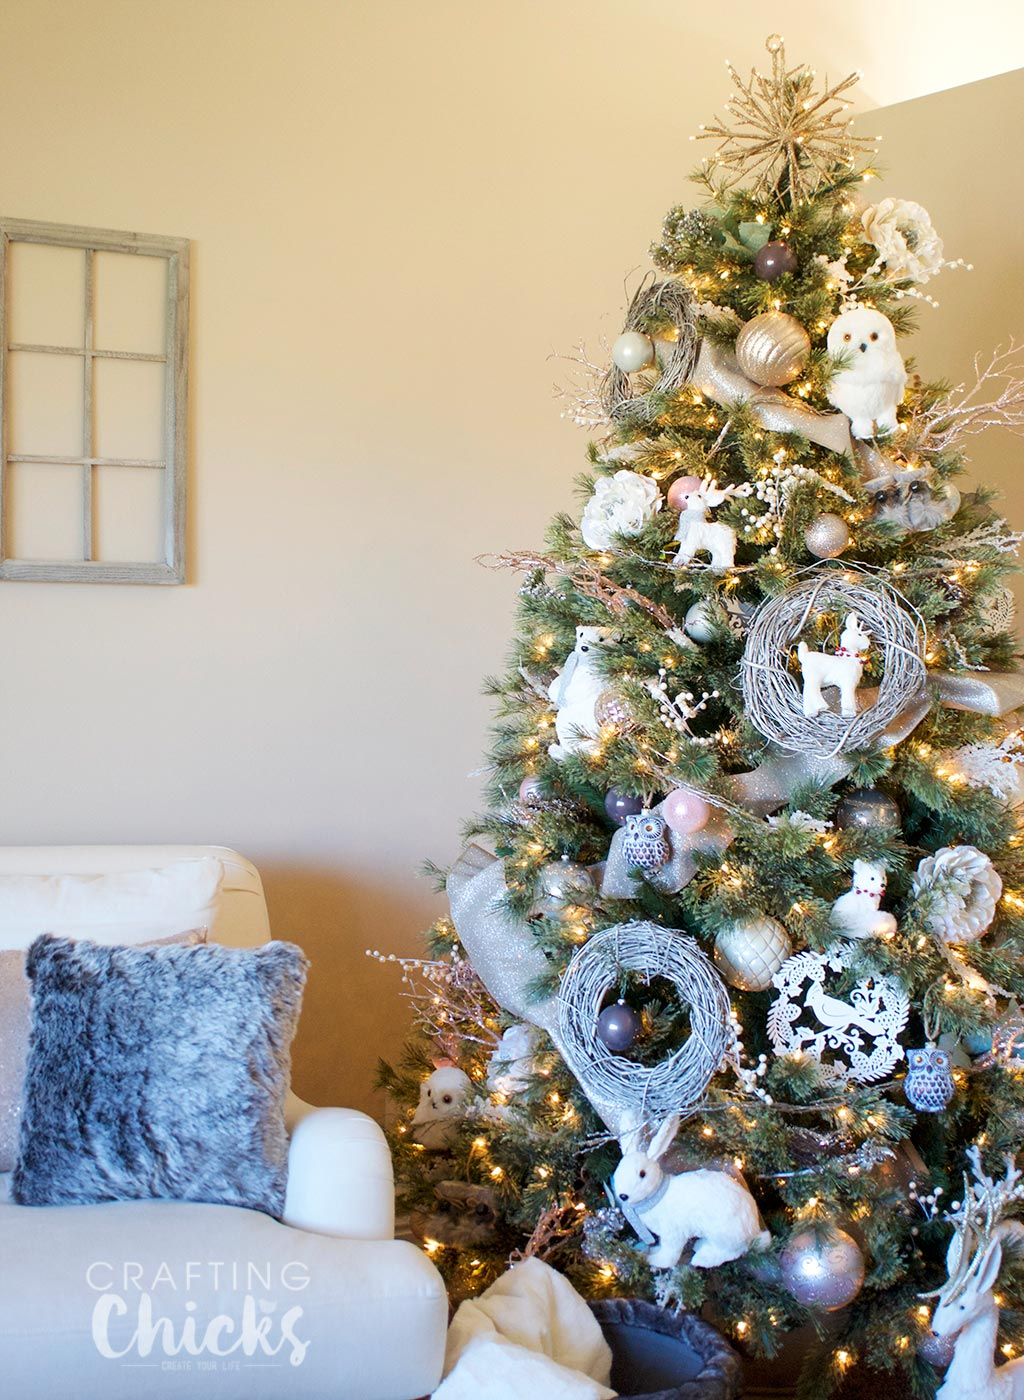 winter wonderland christmas tree the crafting chicks. Black Bedroom Furniture Sets. Home Design Ideas